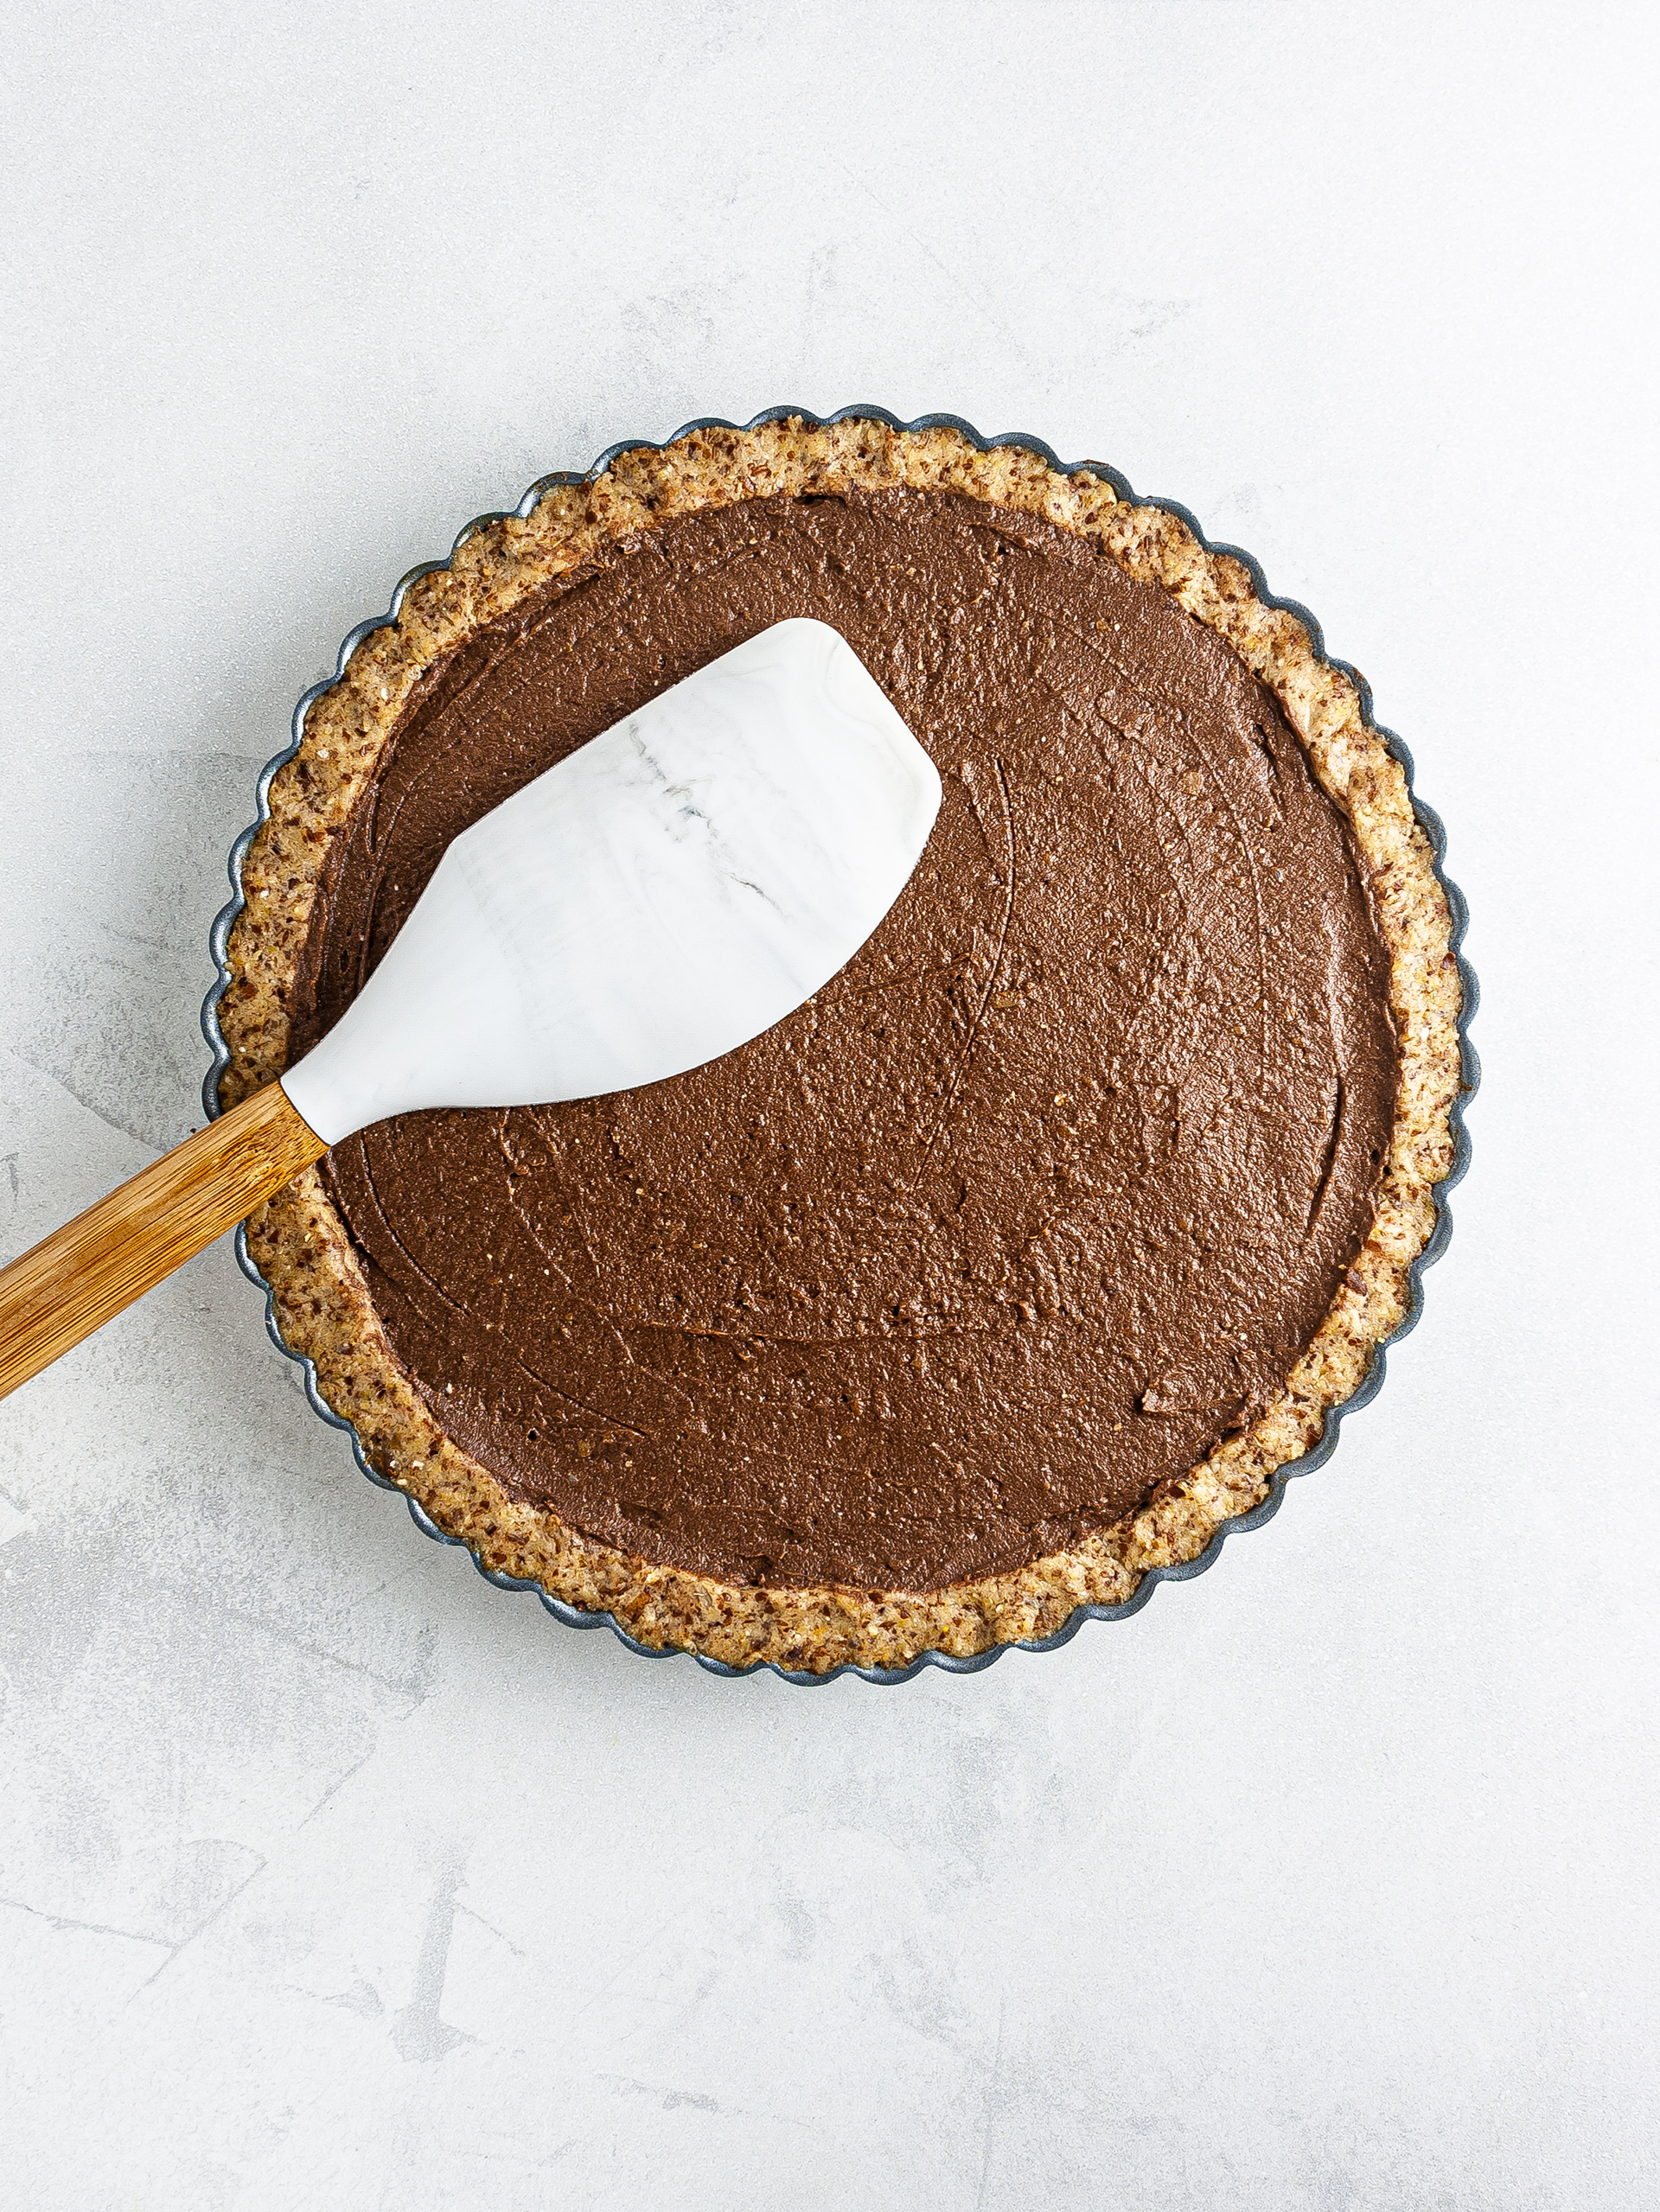 Pie crust filled with the chocolate cream